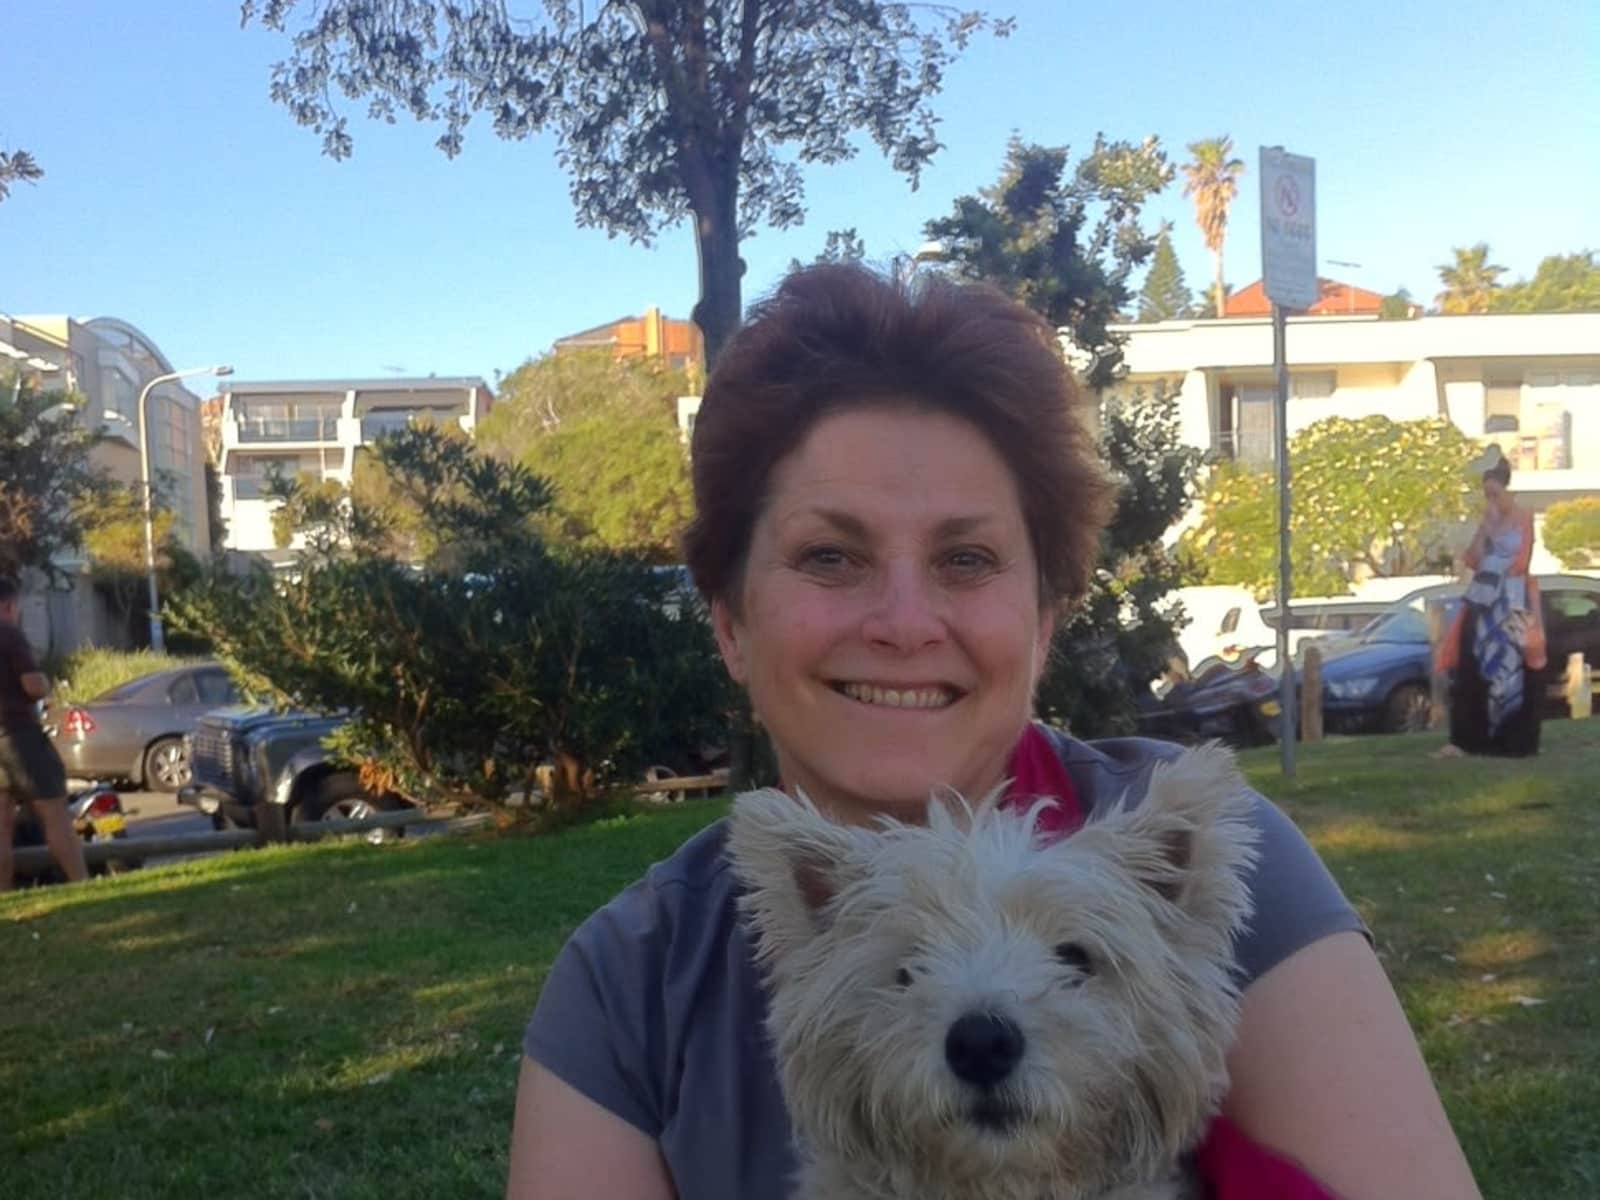 Sue from Sydney, New South Wales, Australia